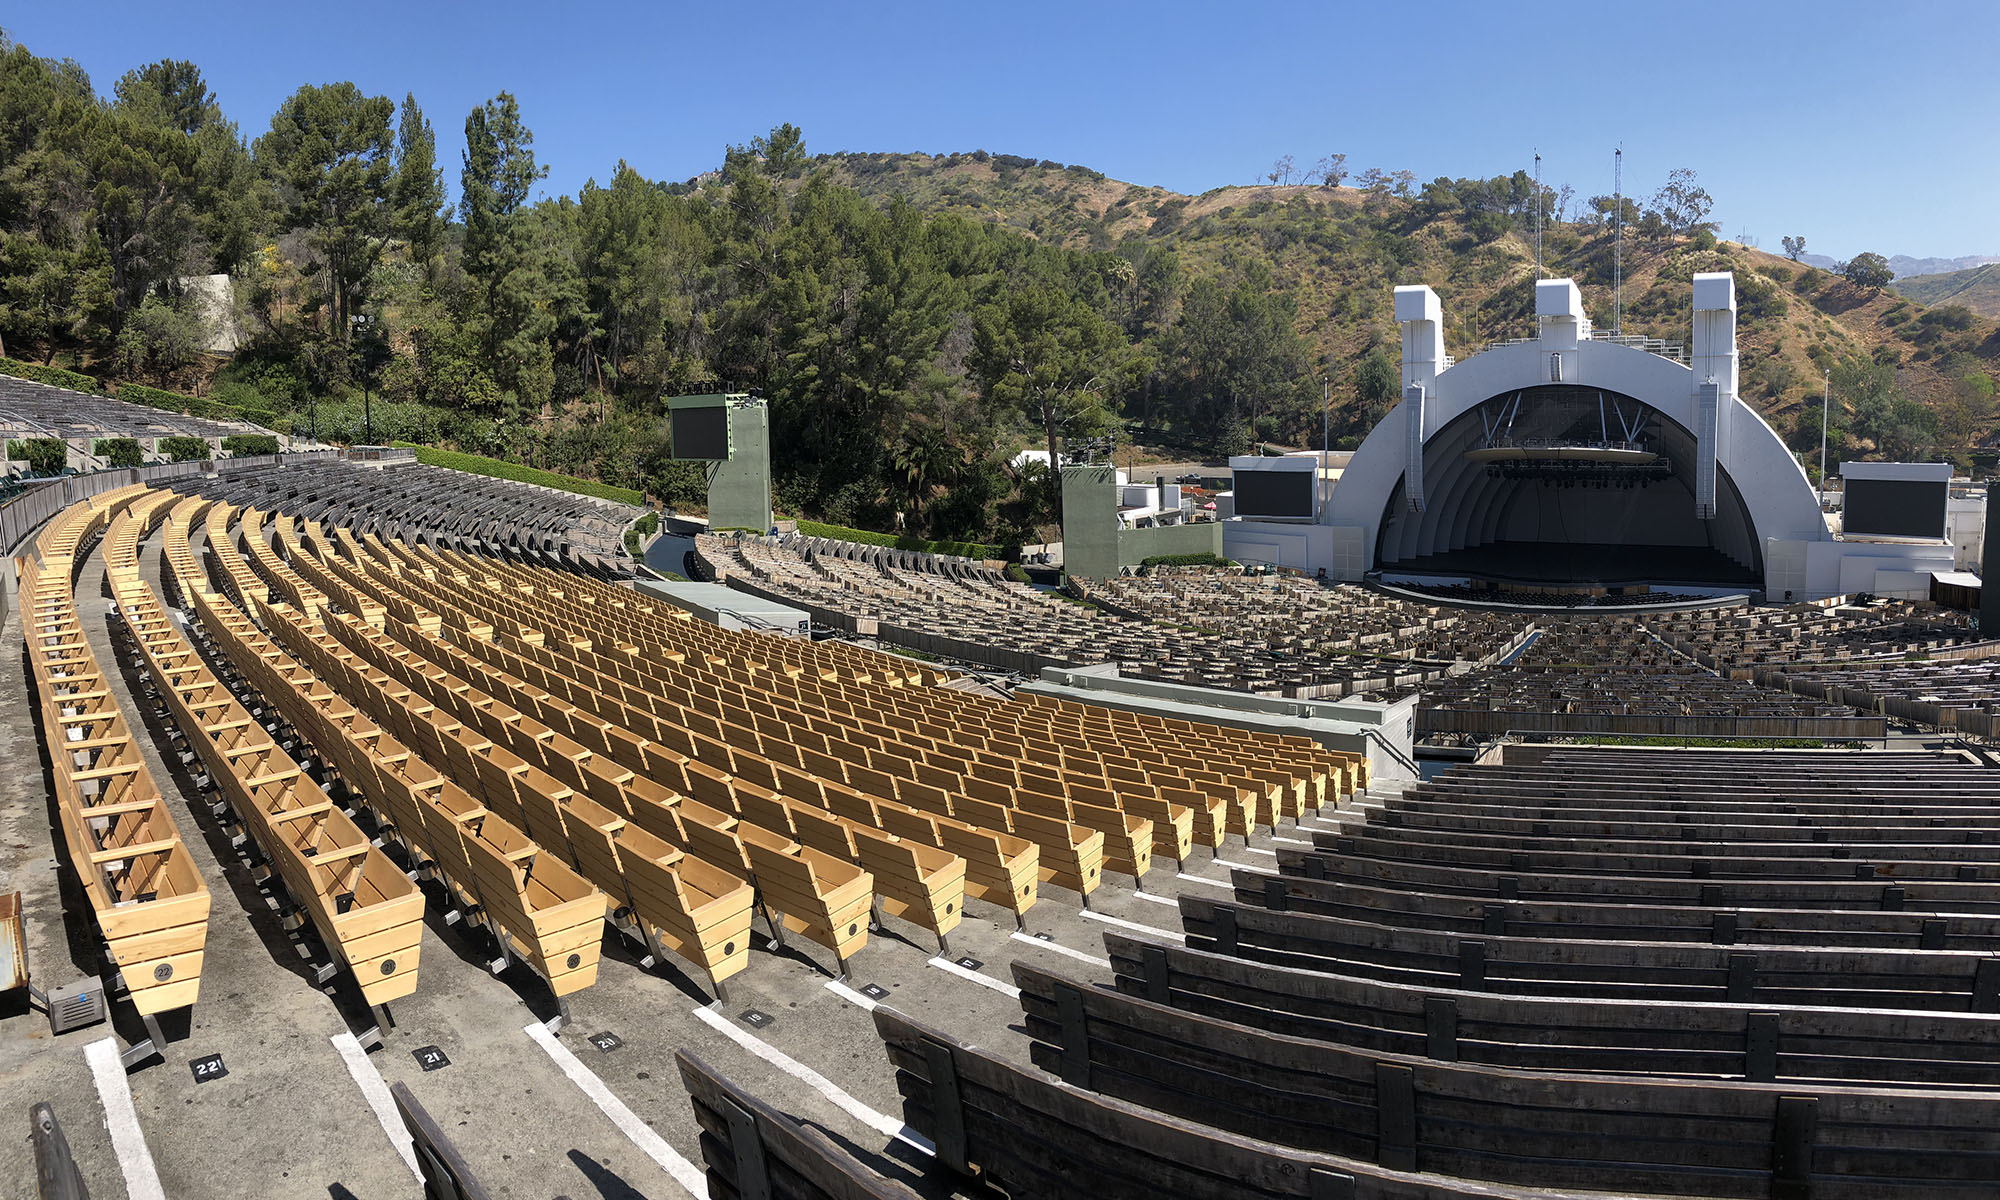 Hollywood Bowl Seating